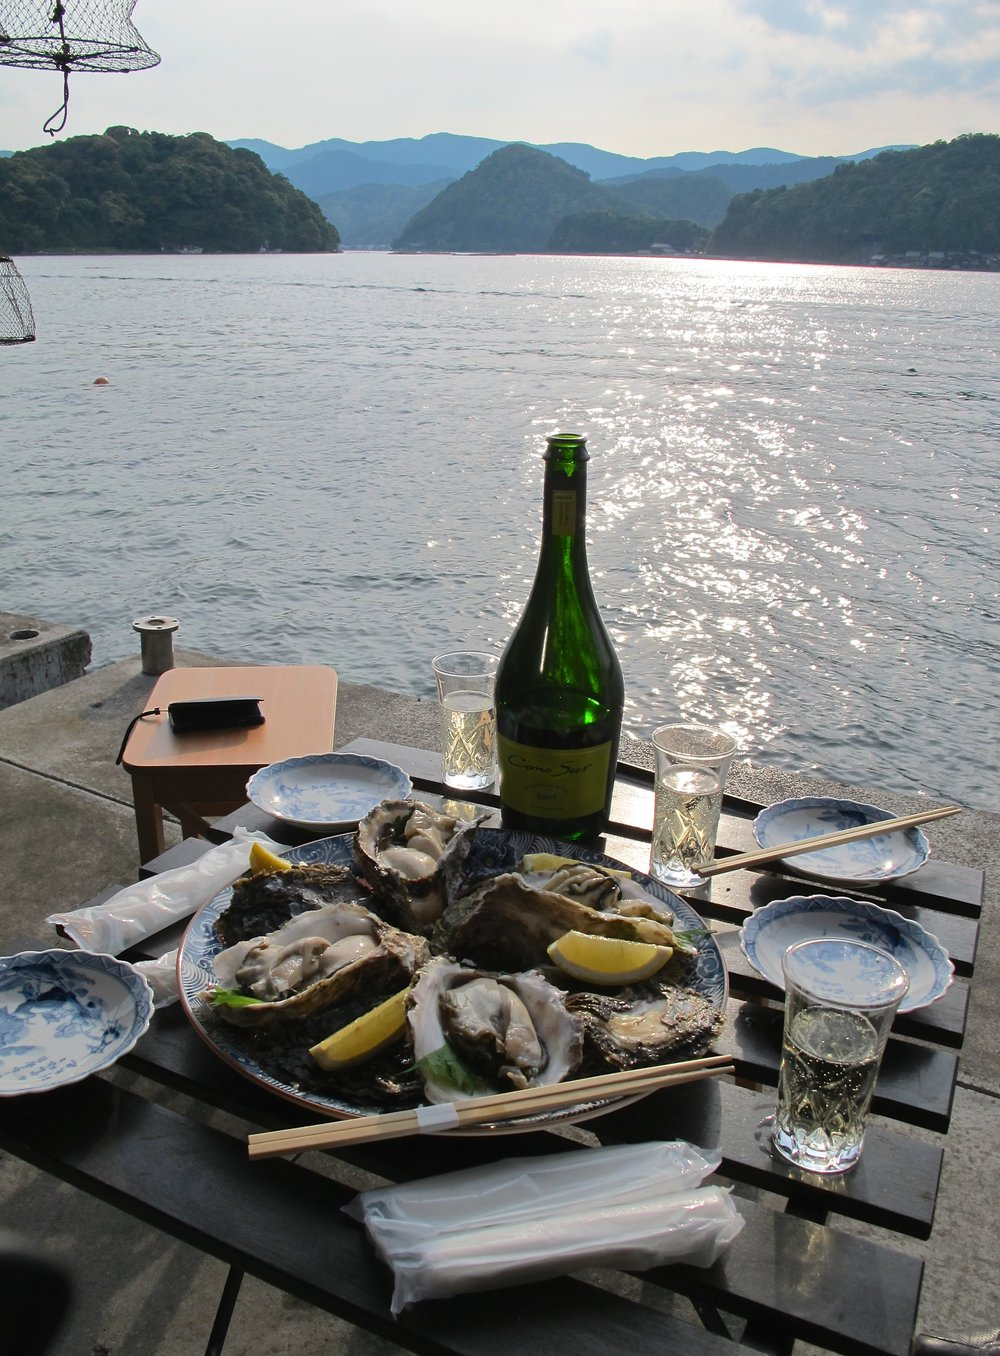 Sunset at Kuraya guesthouse accompanied by champagne and rock oysters (iwagaki.)